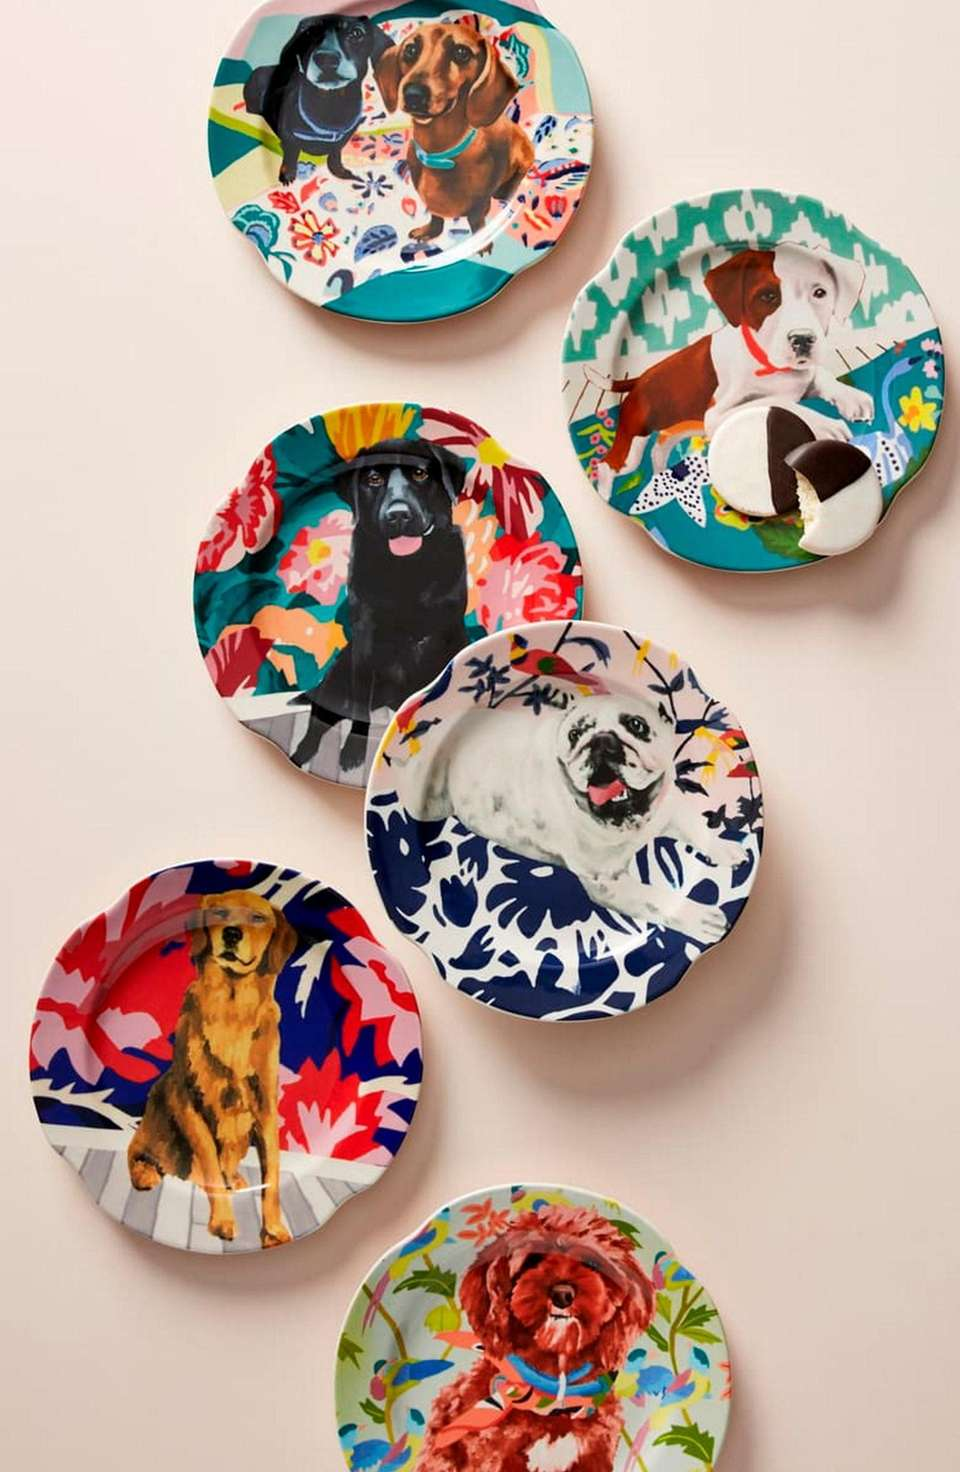 Liven up any table with these side plates